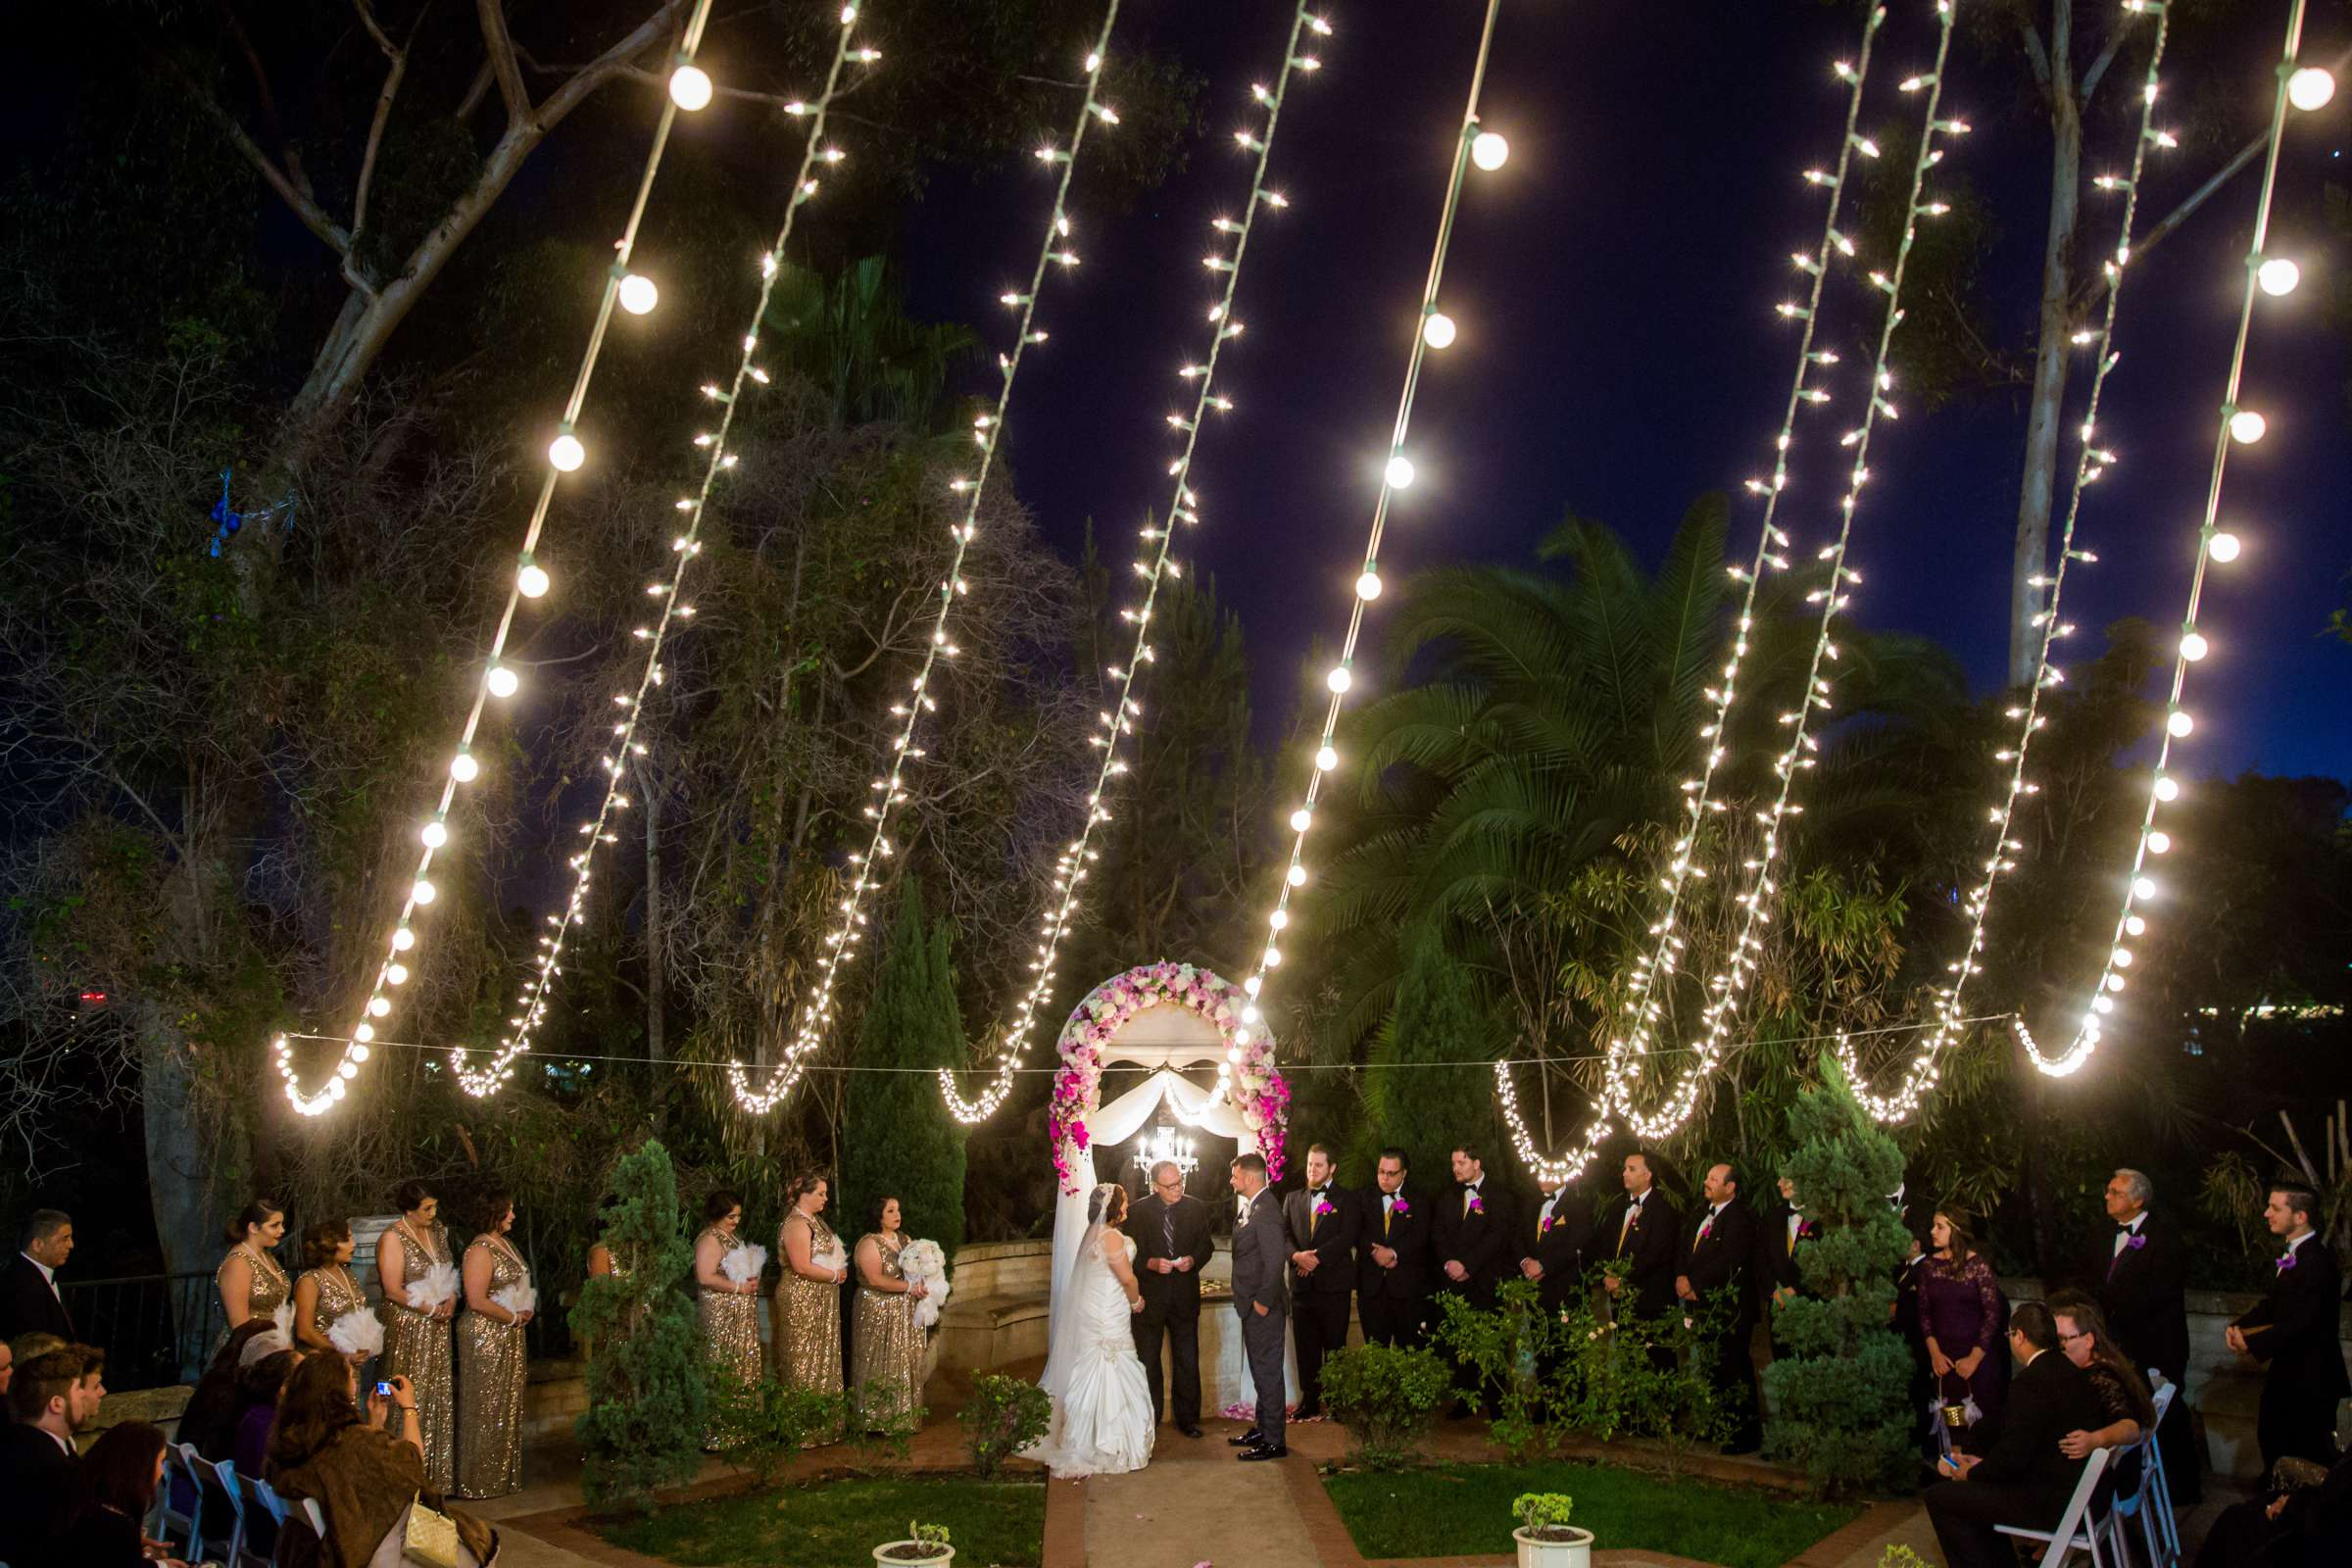 The Prado Wedding coordinated by Breezy Day Weddings, Aalis and Michael Wedding Photo #95 by True Photography